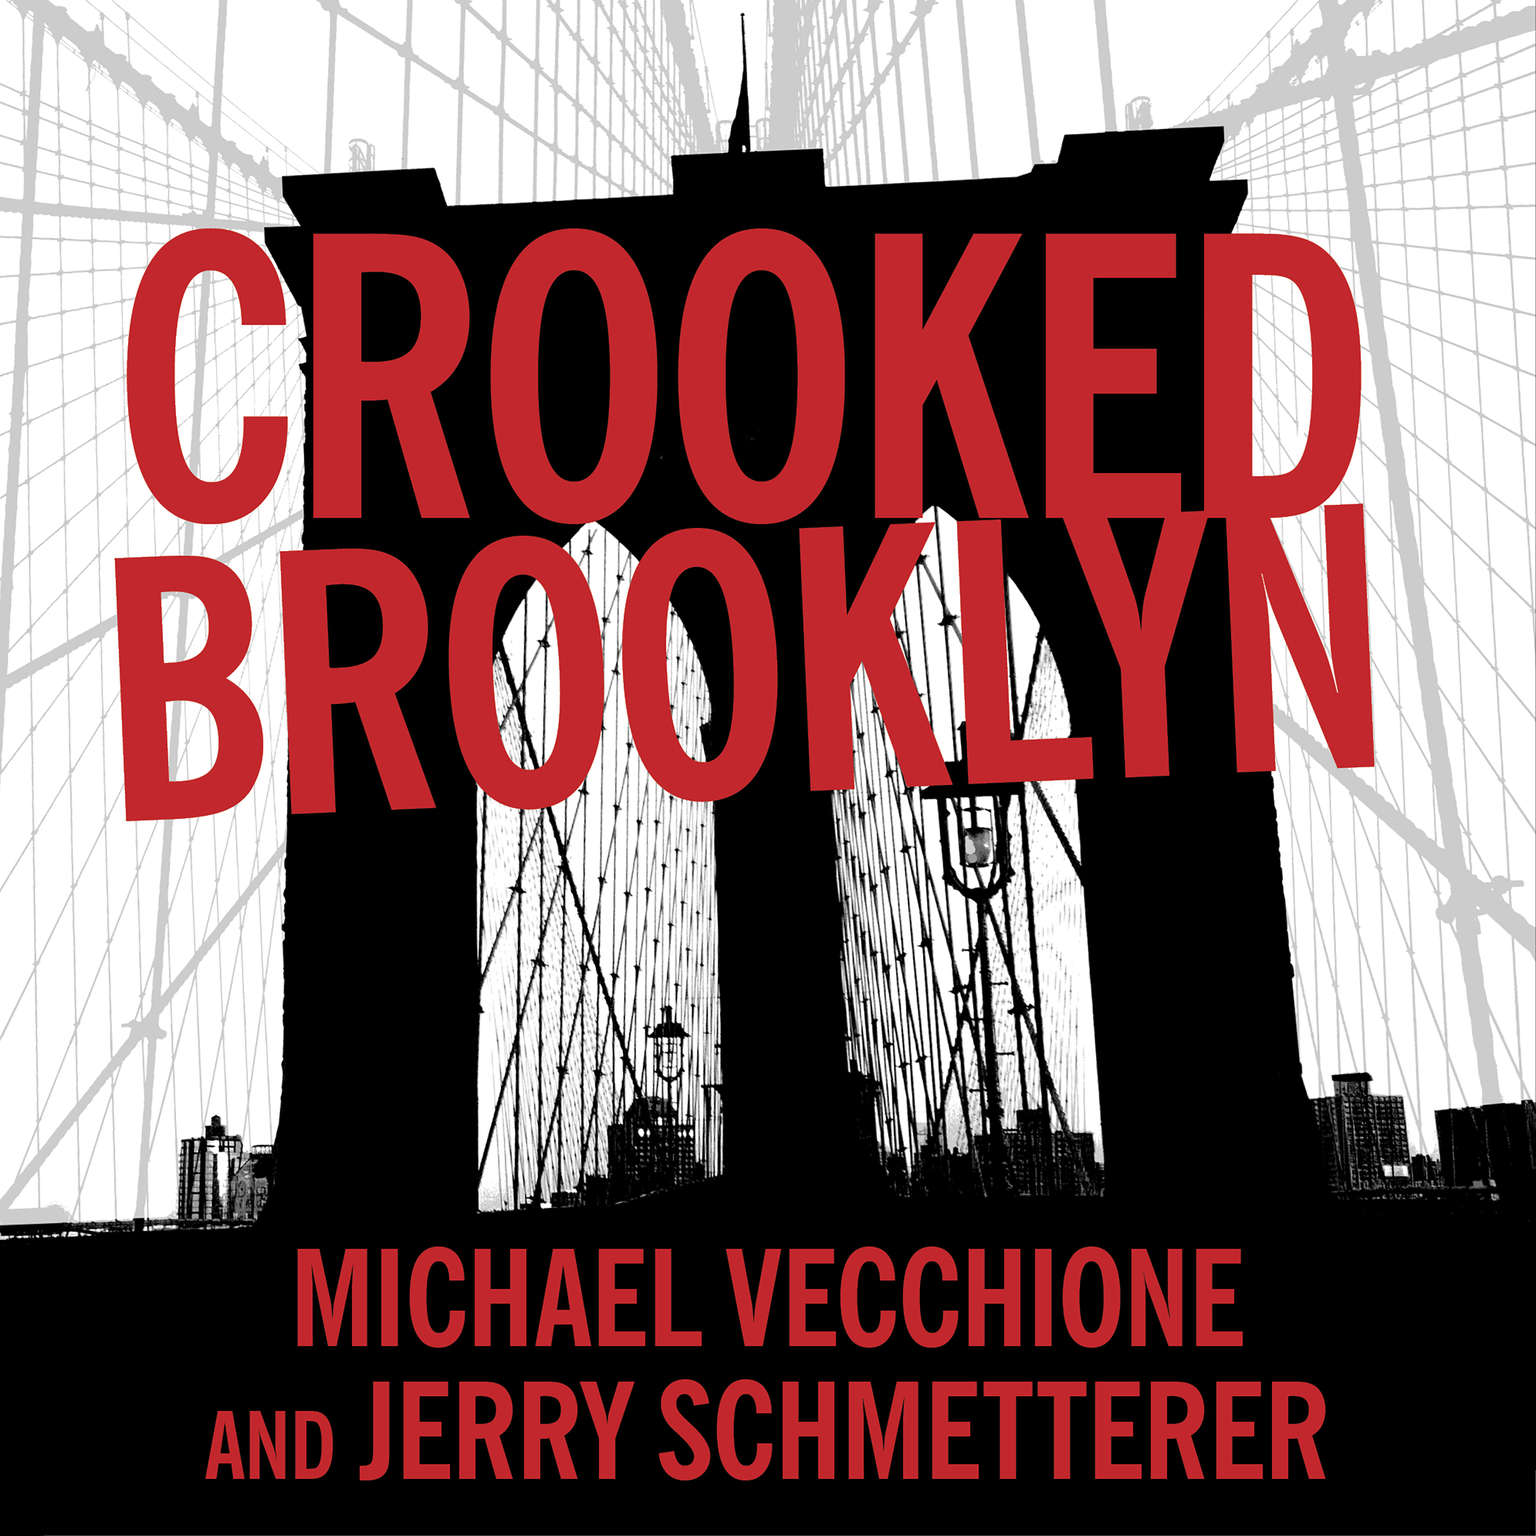 Crooked Brooklyn: Taking Down Corrupt Judges, Dirty Politicians, Killers, and Body Snatchers Audiobook, by Michael Vecchione